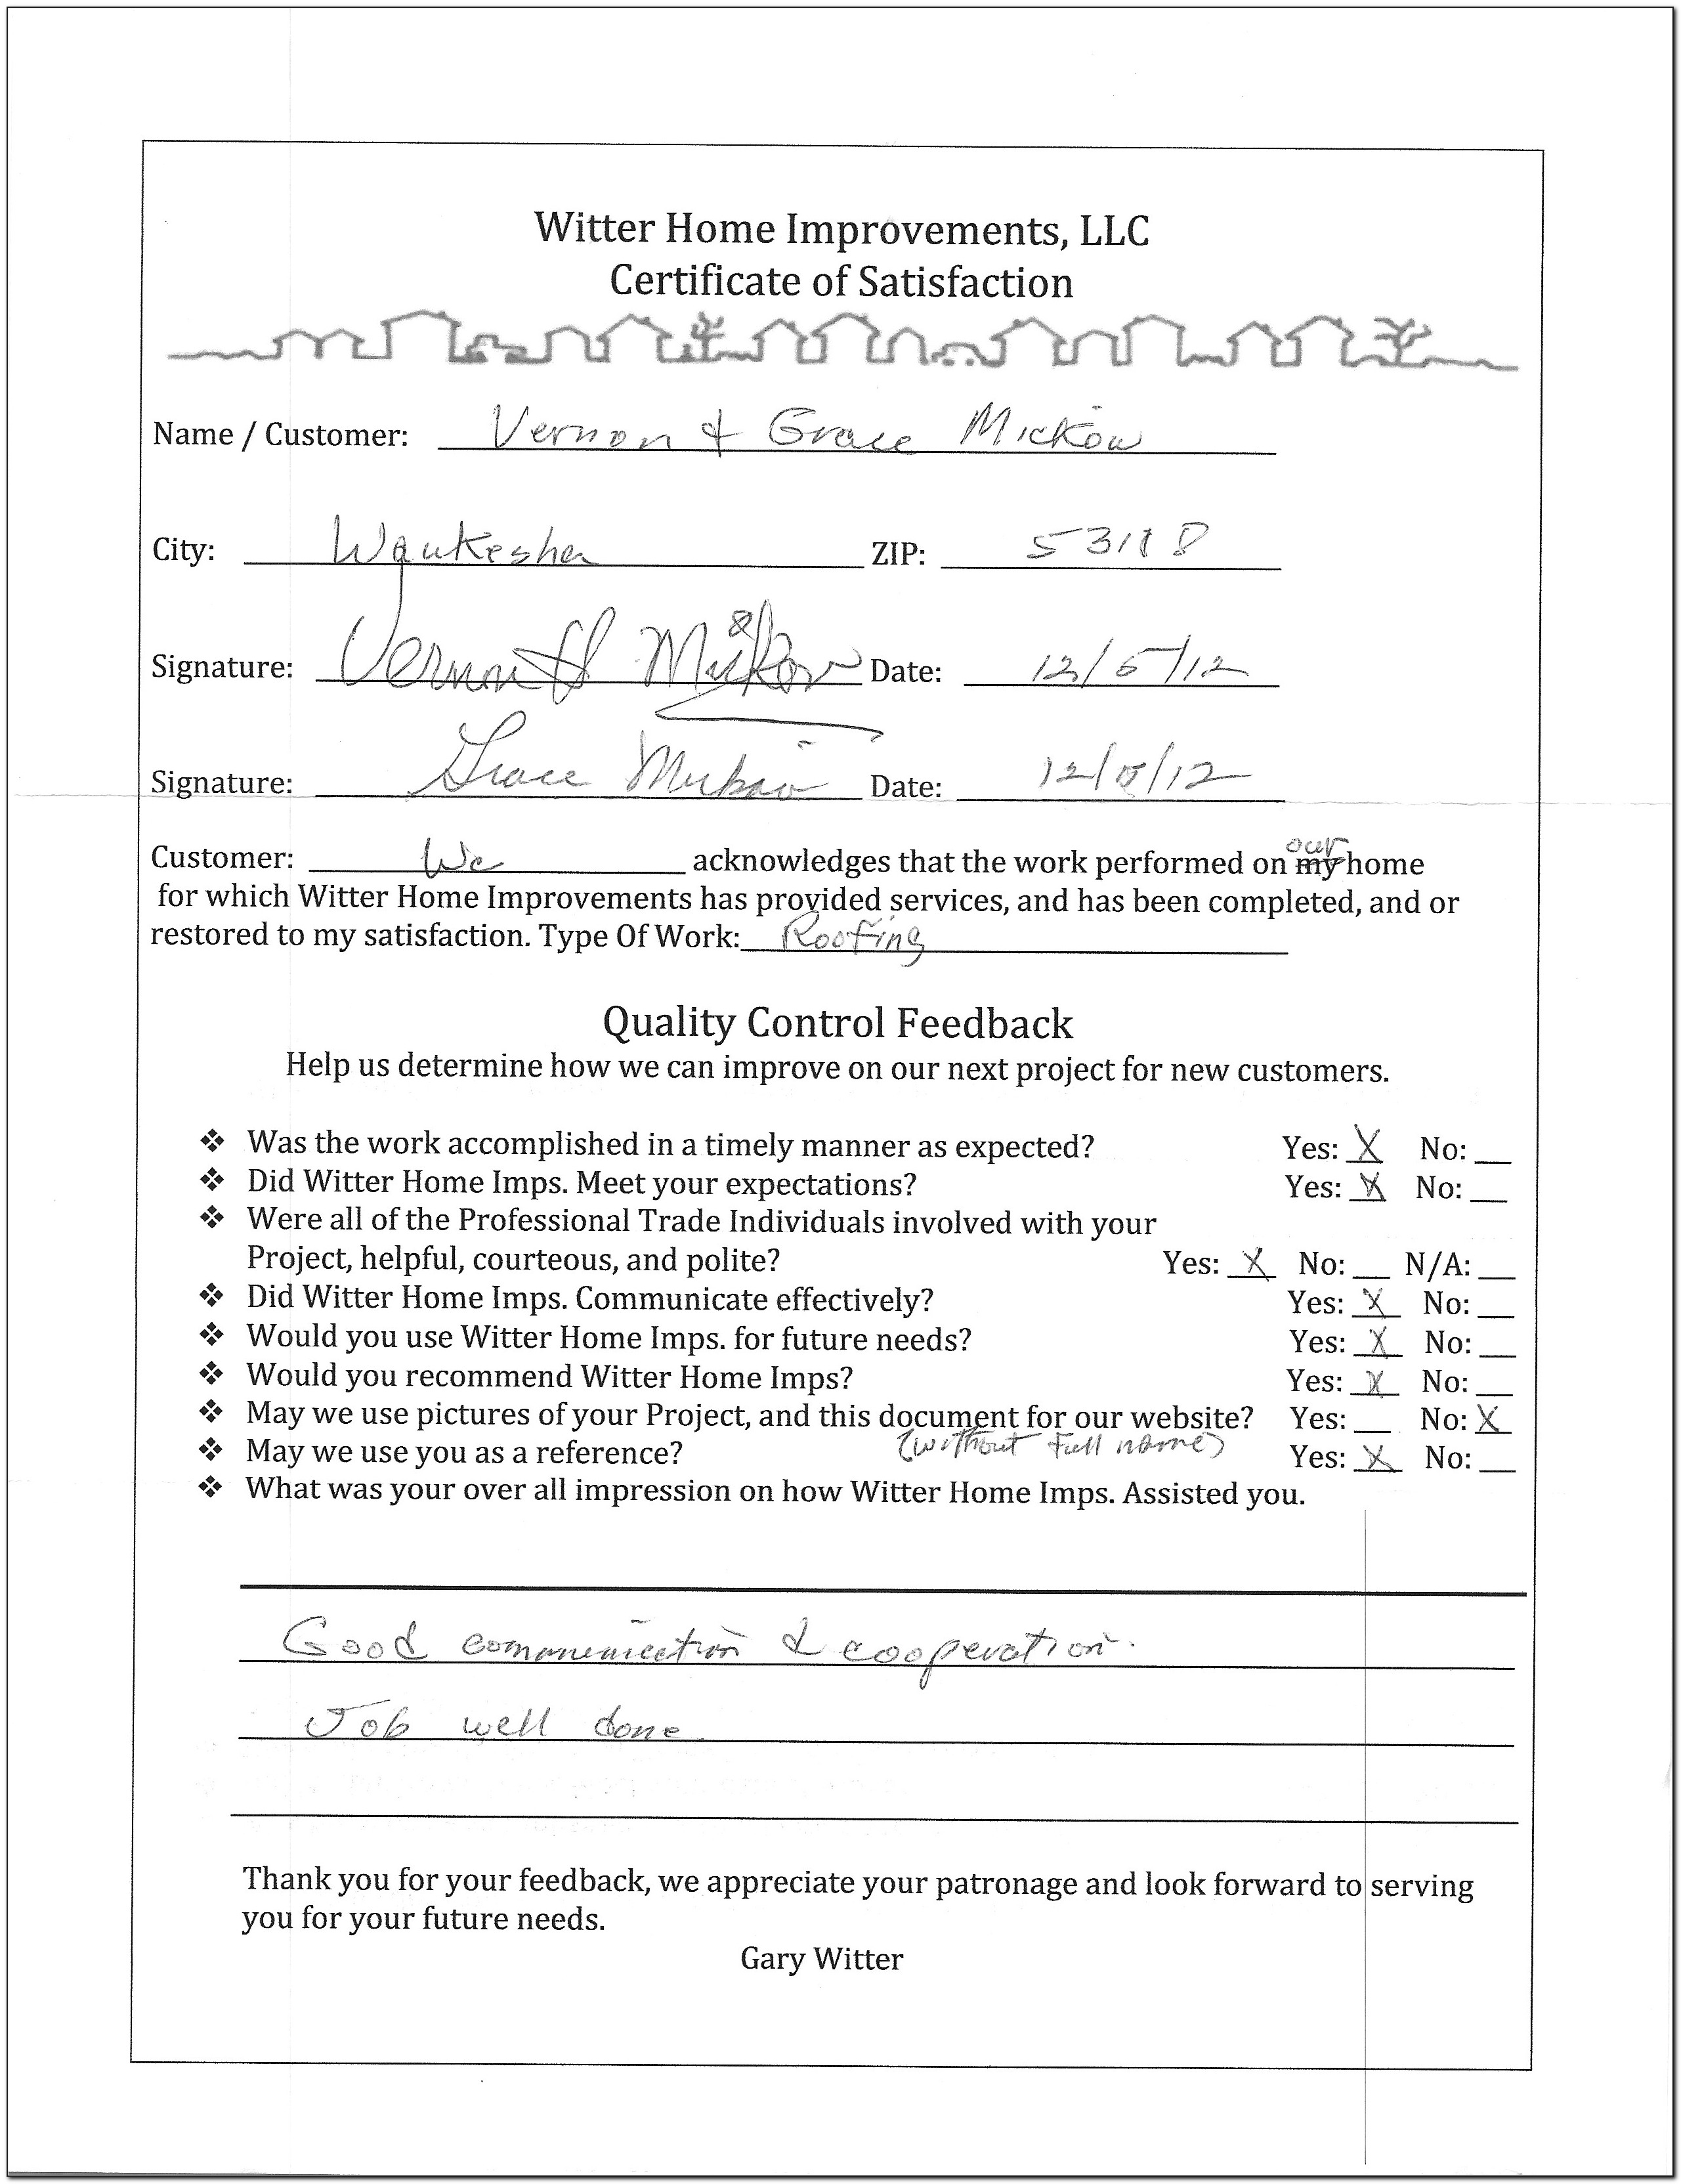 Roofing Certificate Of Completion Form